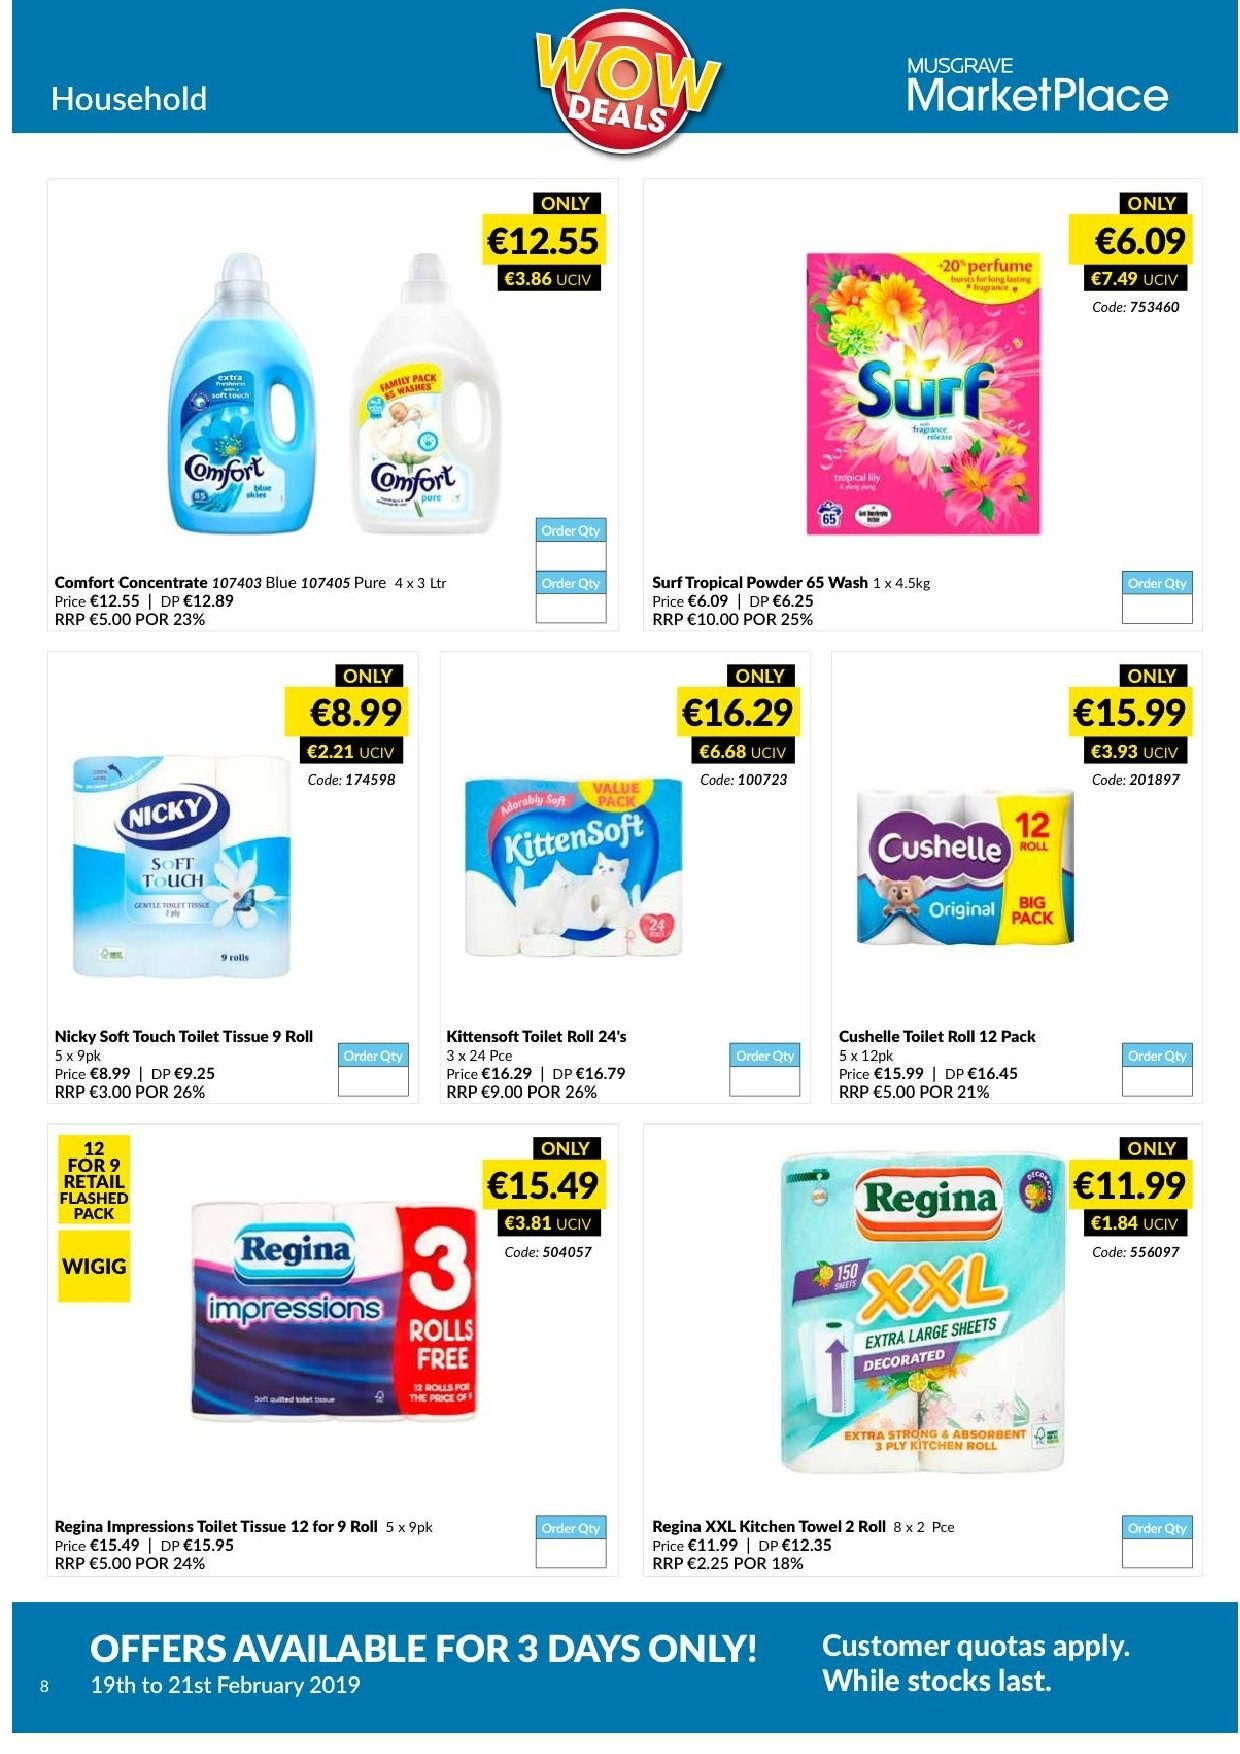 MUSGRAVE Market Place offer  - 19.2.2019 - 21.2.2019 - Sales products - rolls, kitchen towel. Page 8.